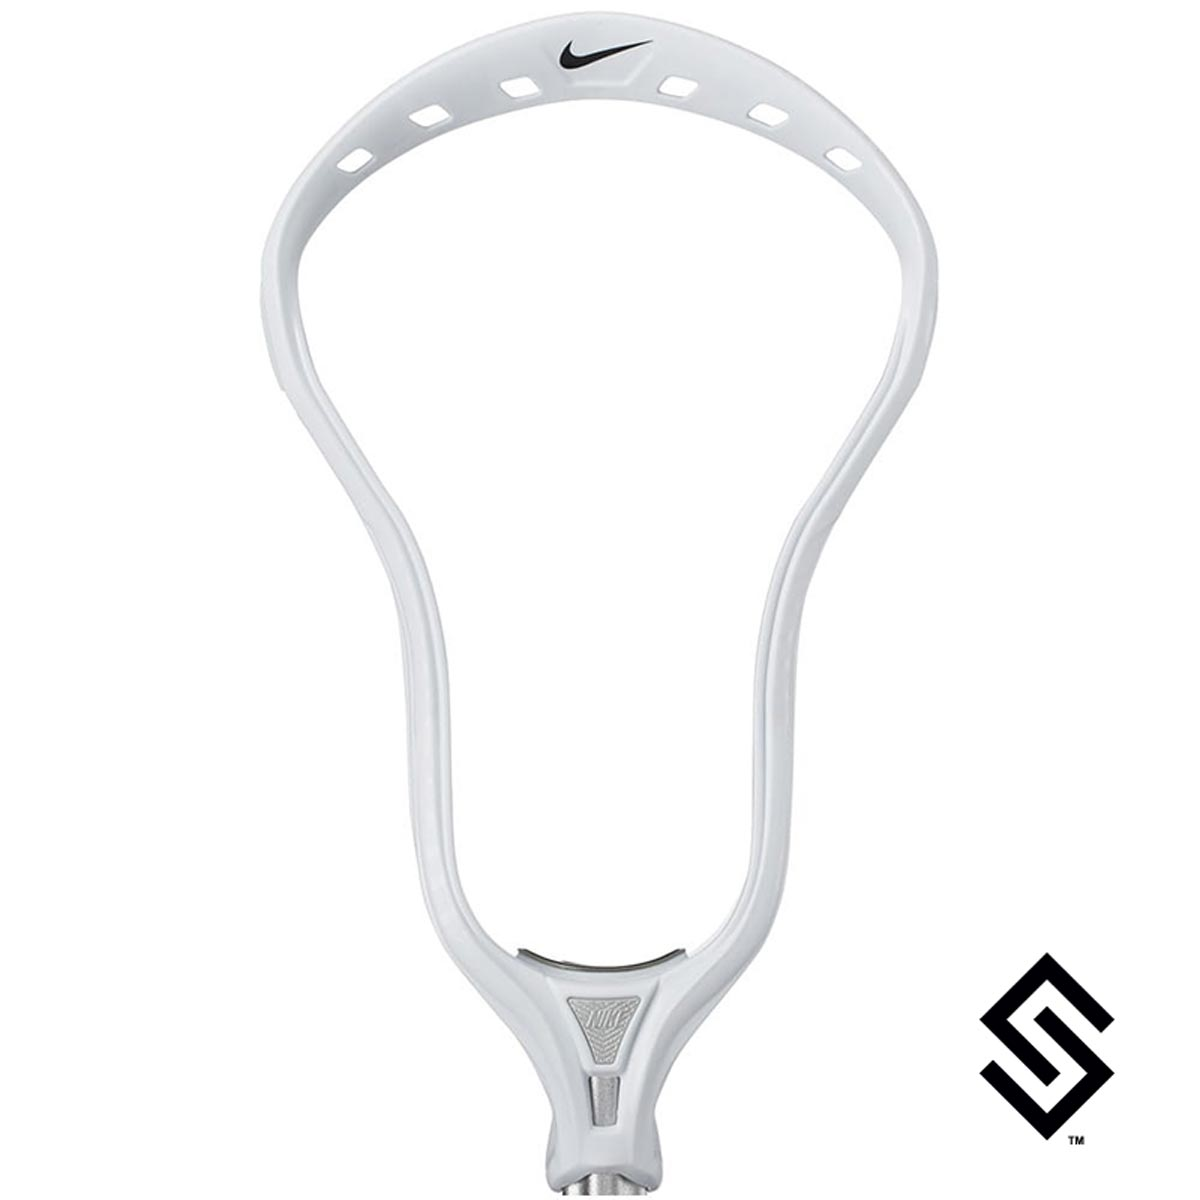 Nike Lakota 2 Men's Lacrosse Head - Unstrung